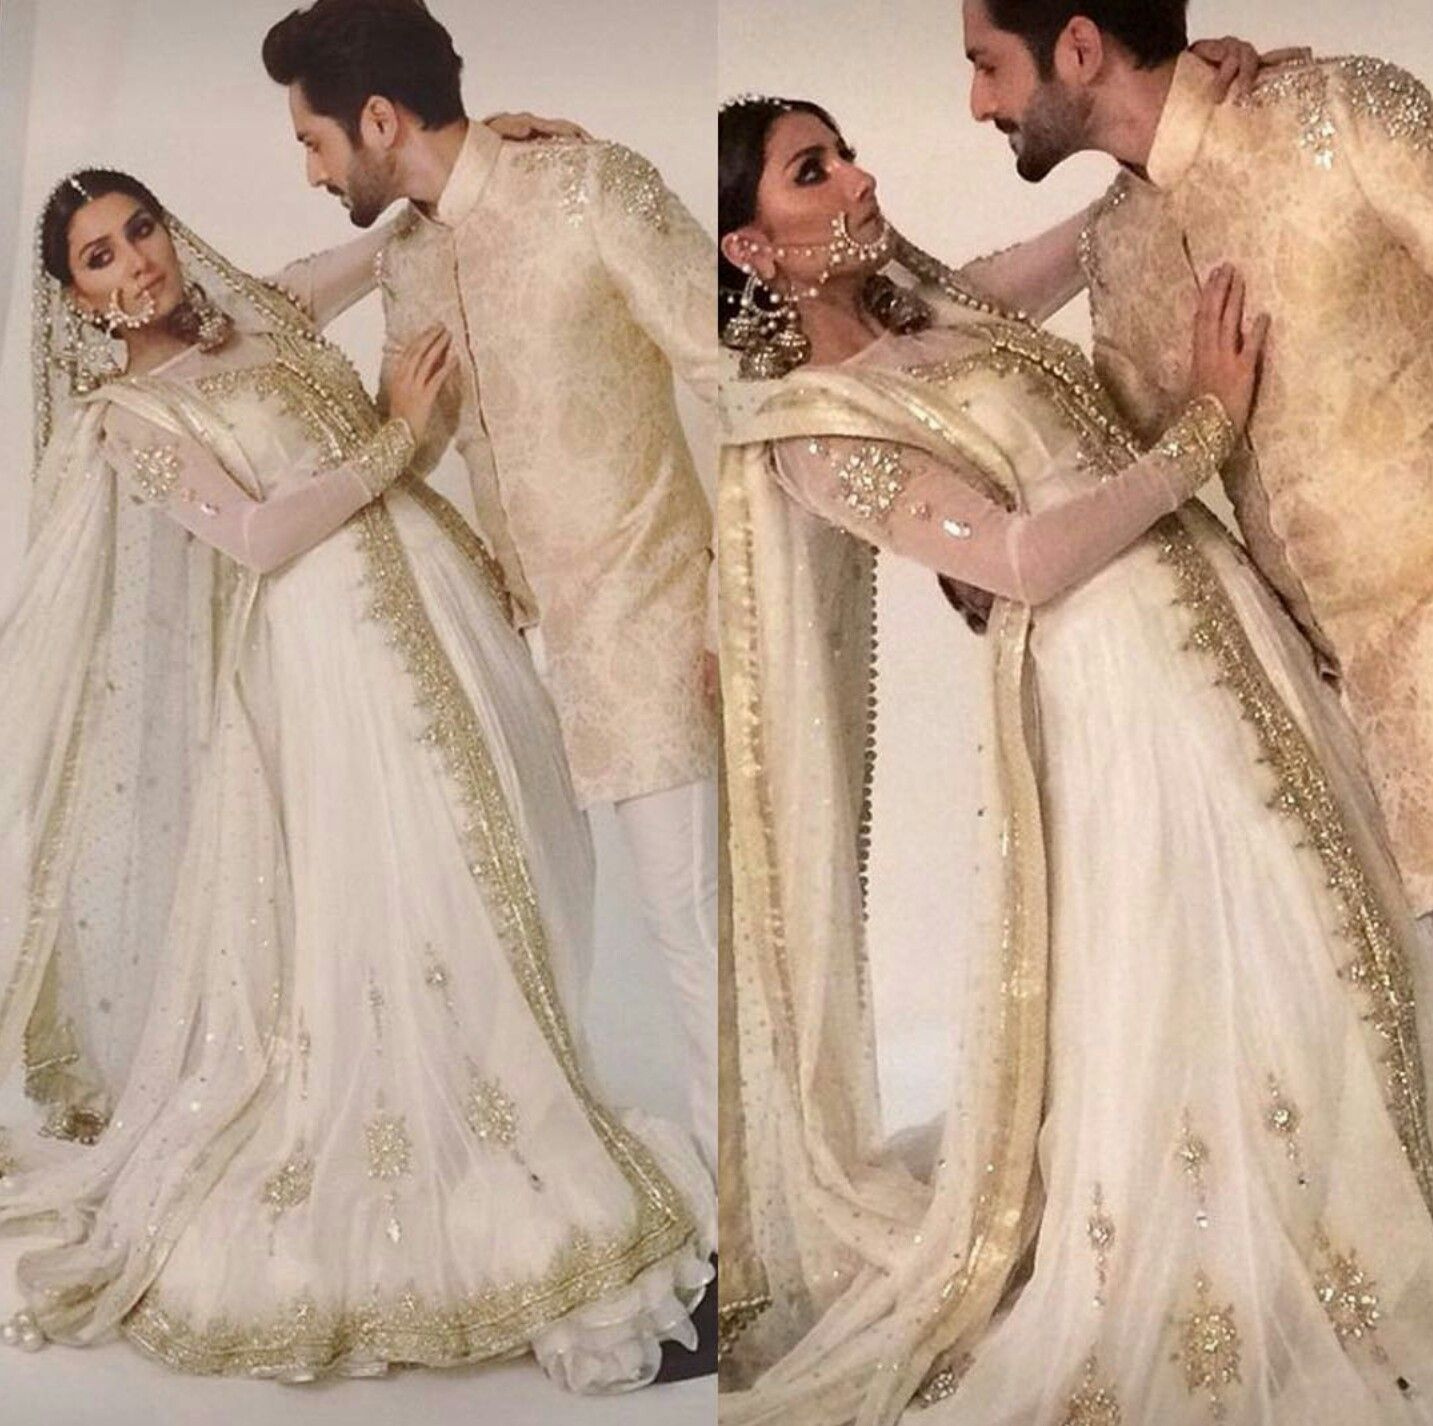 Wearing White To A Wedding.Ayesha Khan Wearing White And Gold Bridal For A Photoshoot